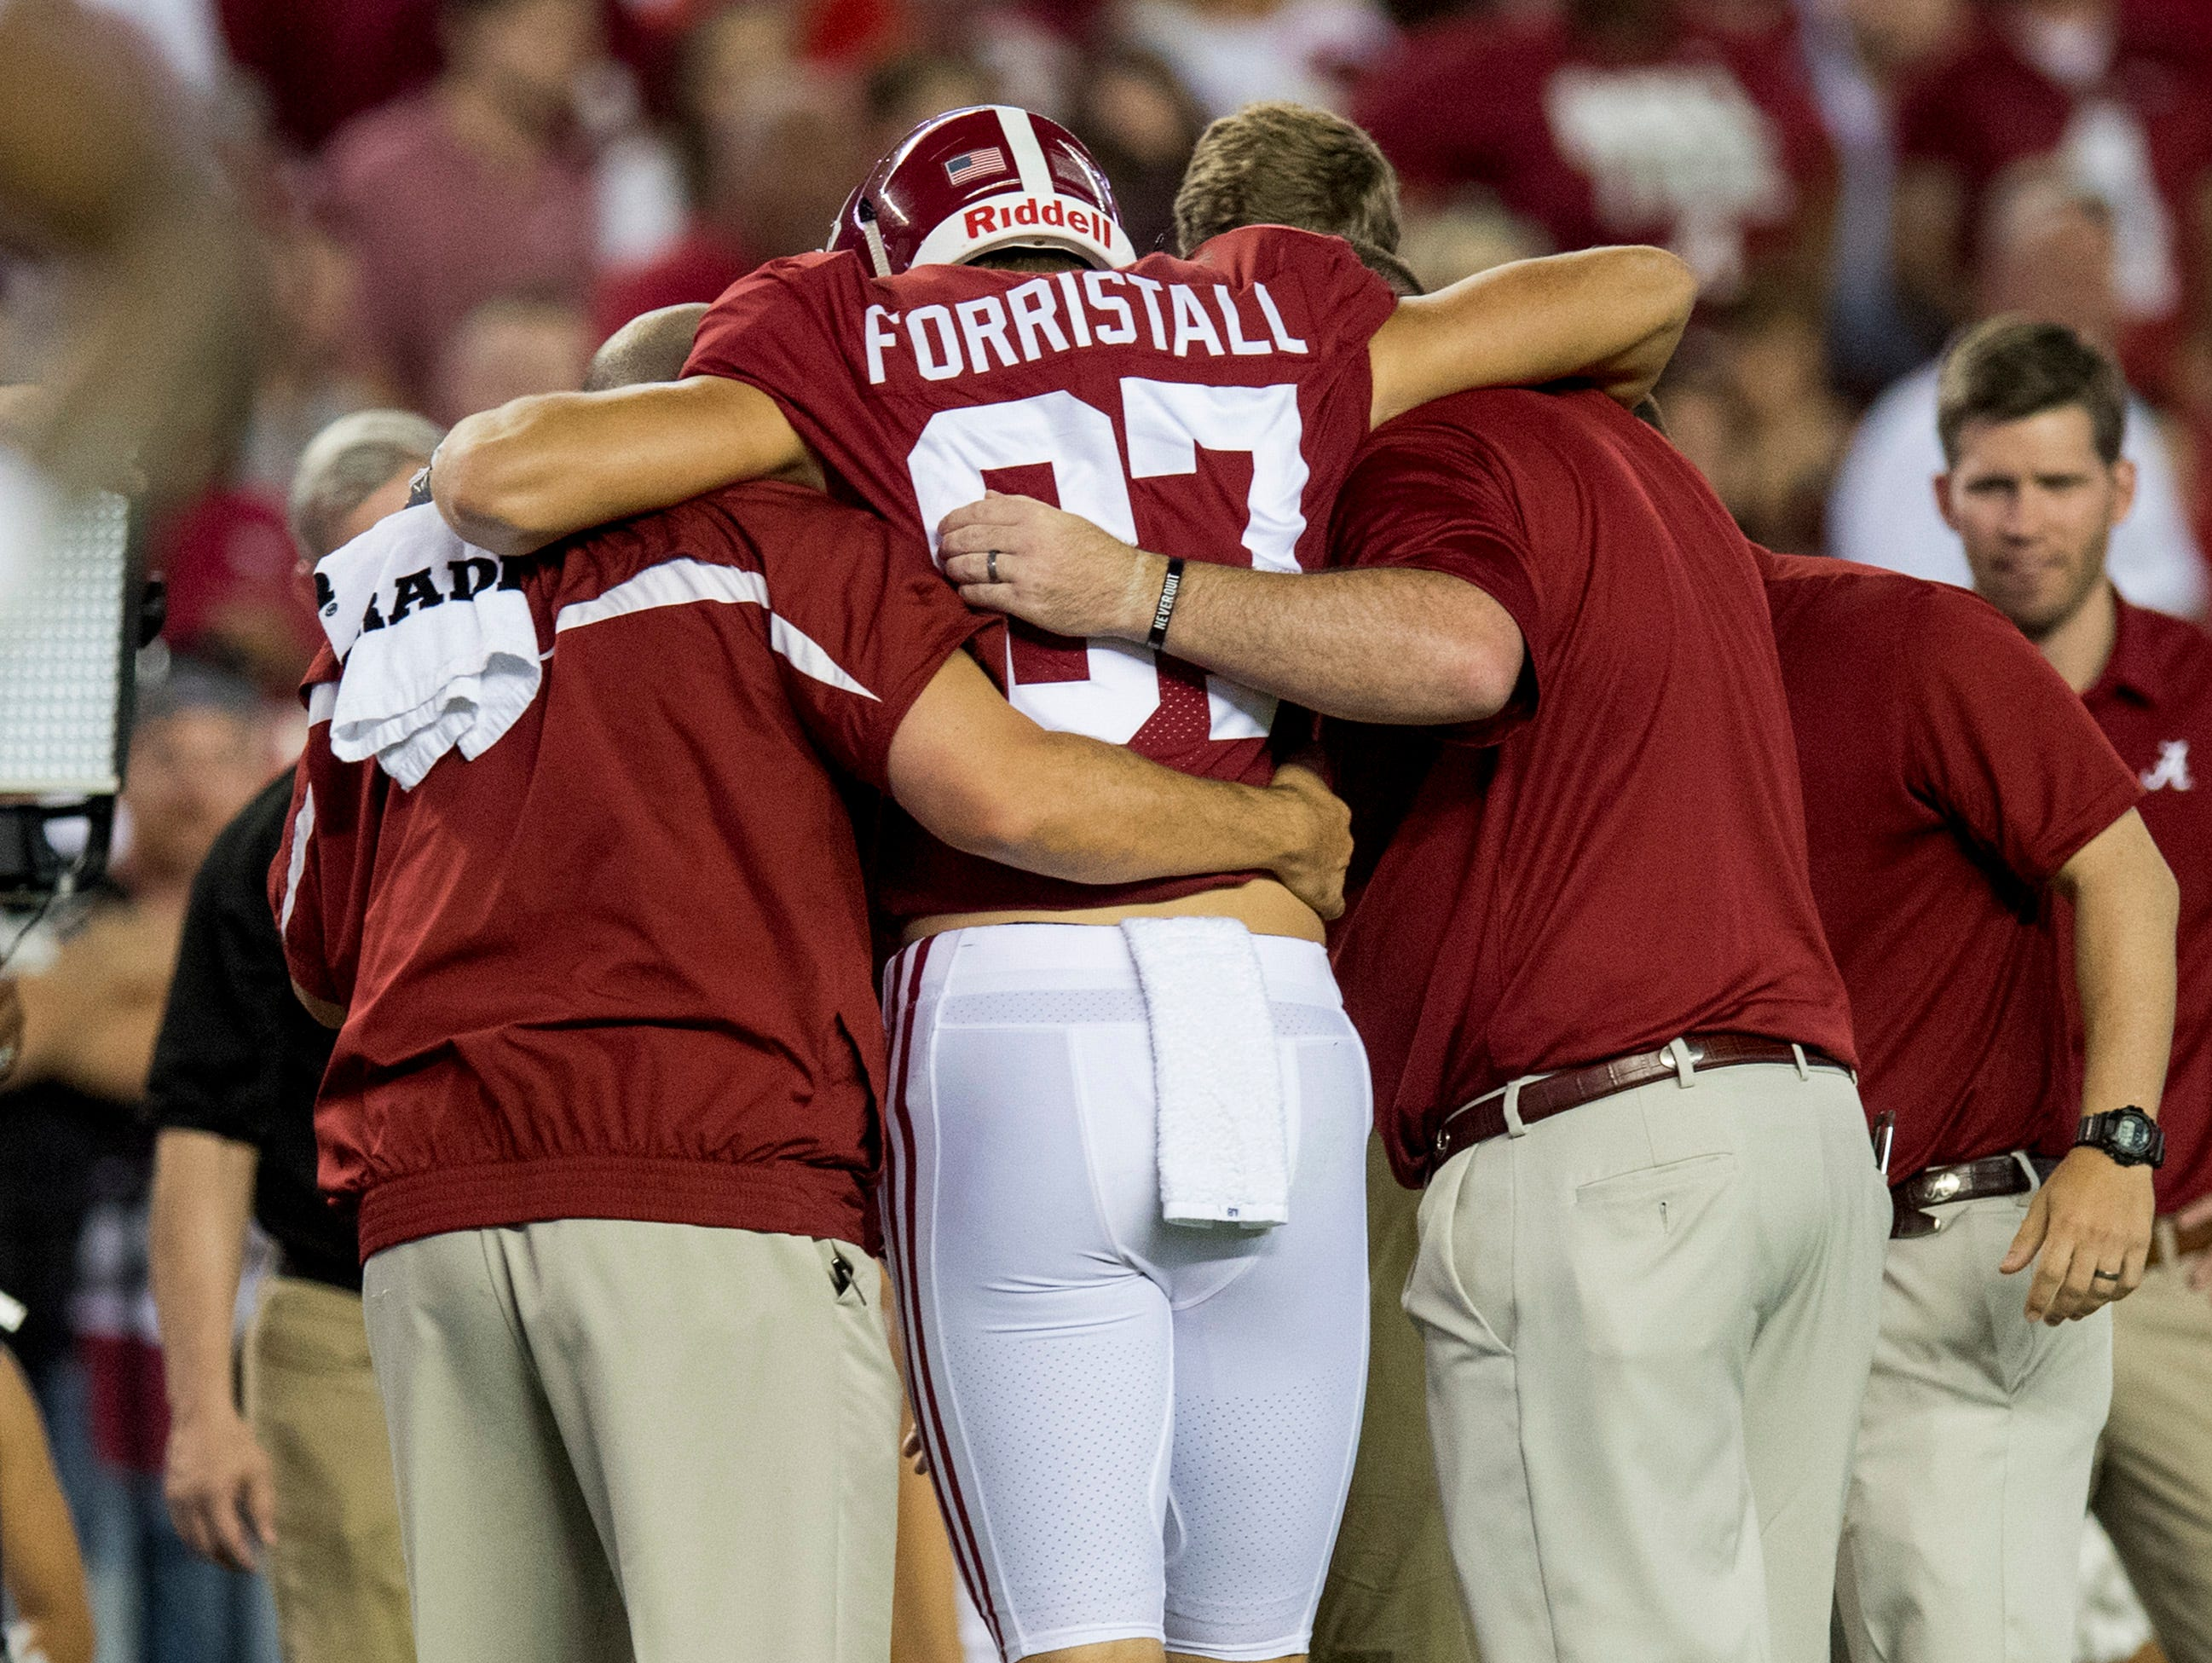 Alabama tight end Miller Forristall (87) is injured against Colorado State at Bryant-Denny Stadium in Tuscaloosa, Ala., on Saturday September 16, 2017.(Mickey Welsh / Montgomery Advertiser)